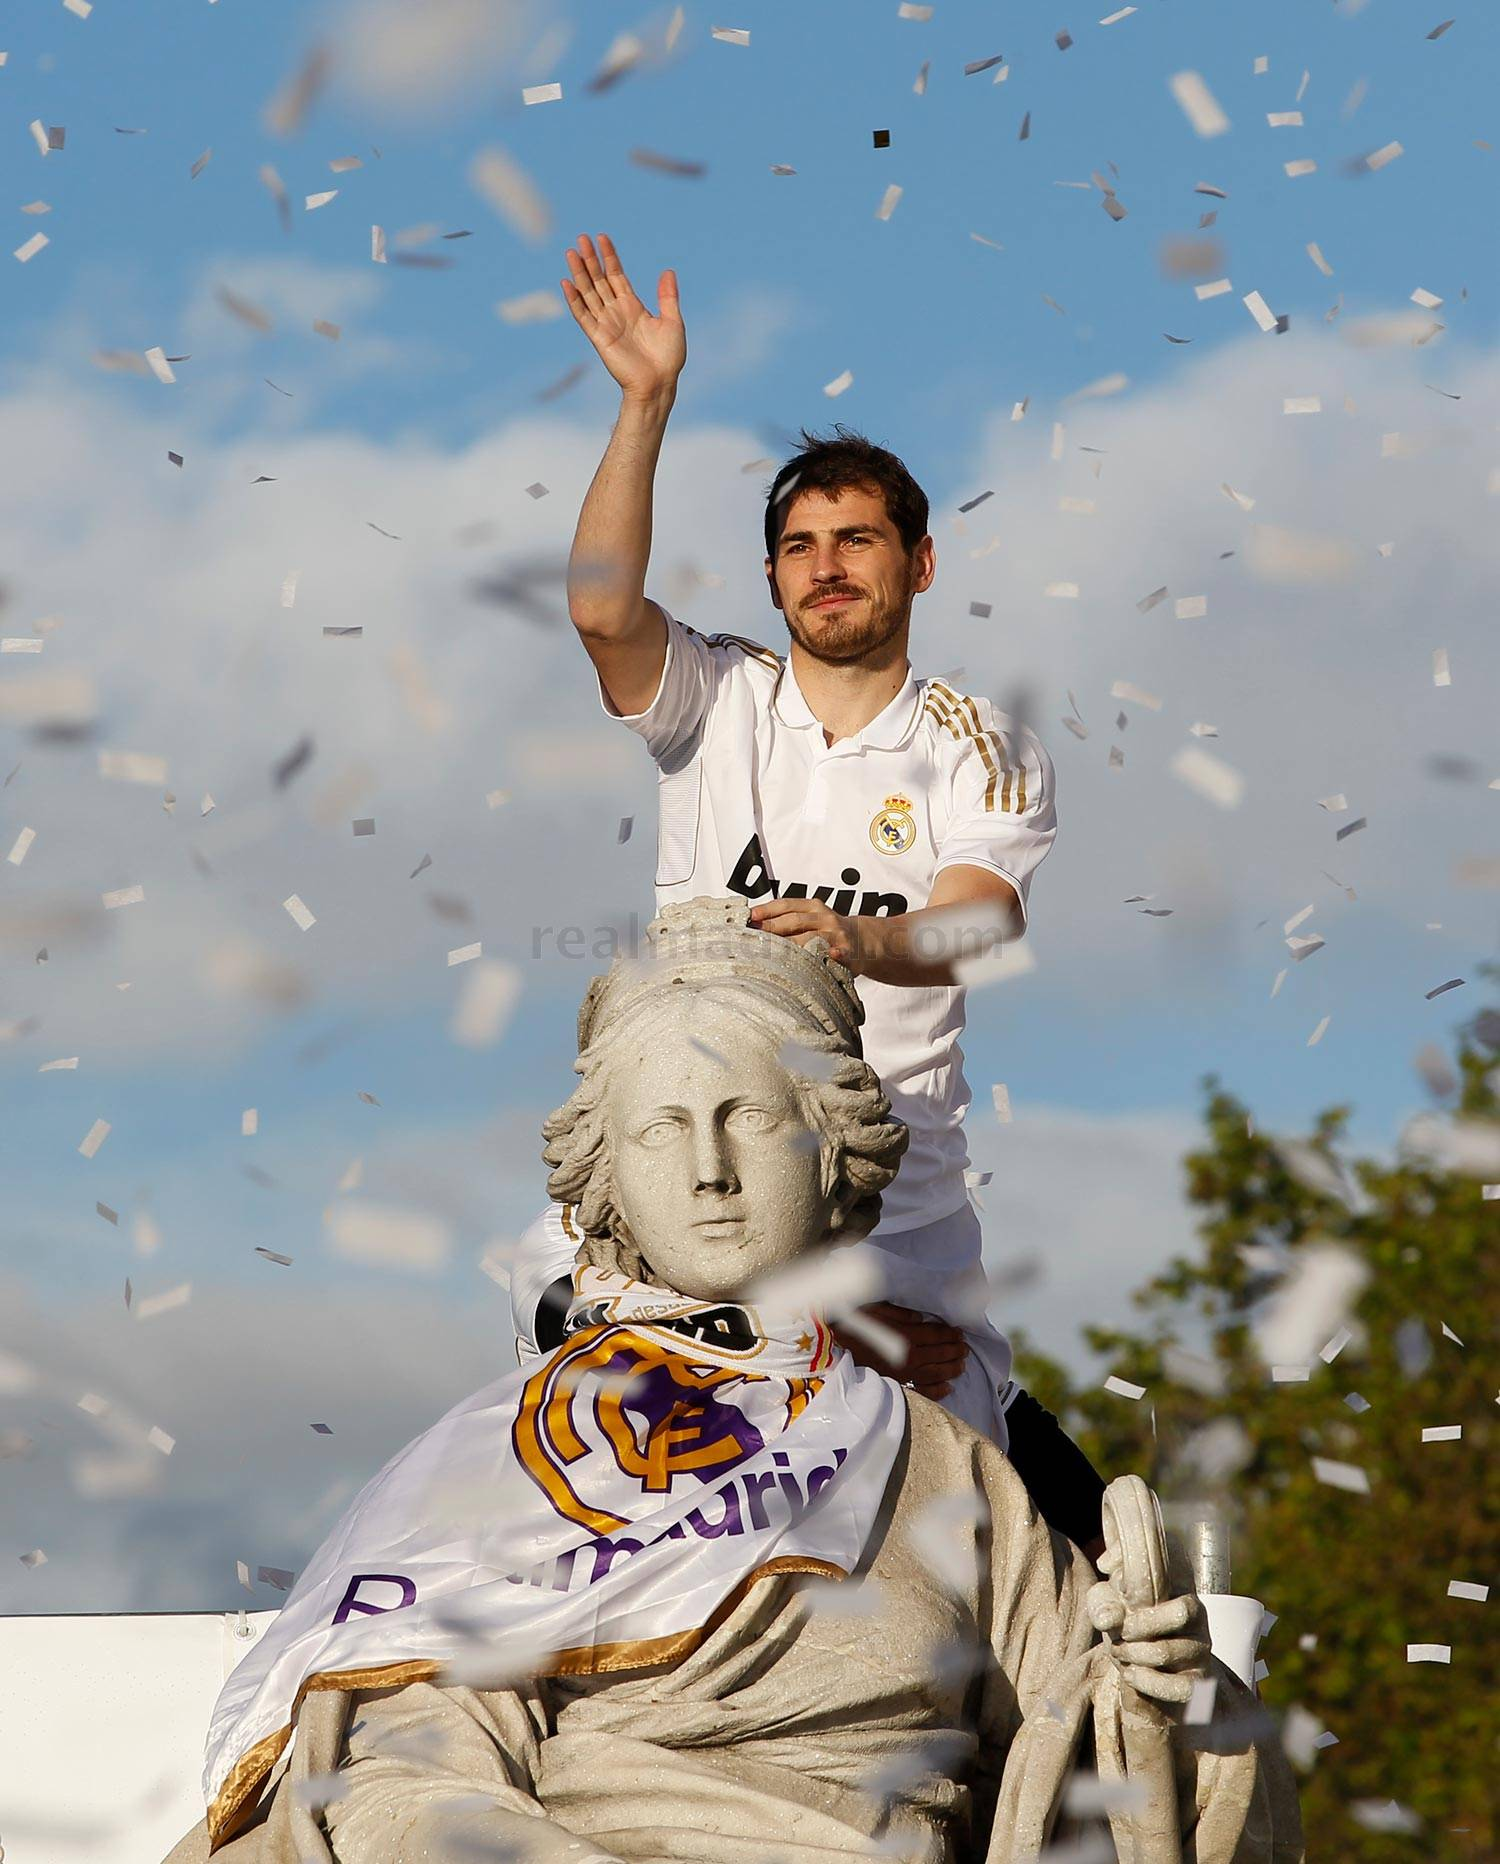 Real Madrid - Iker Casillas - 04-08-2020